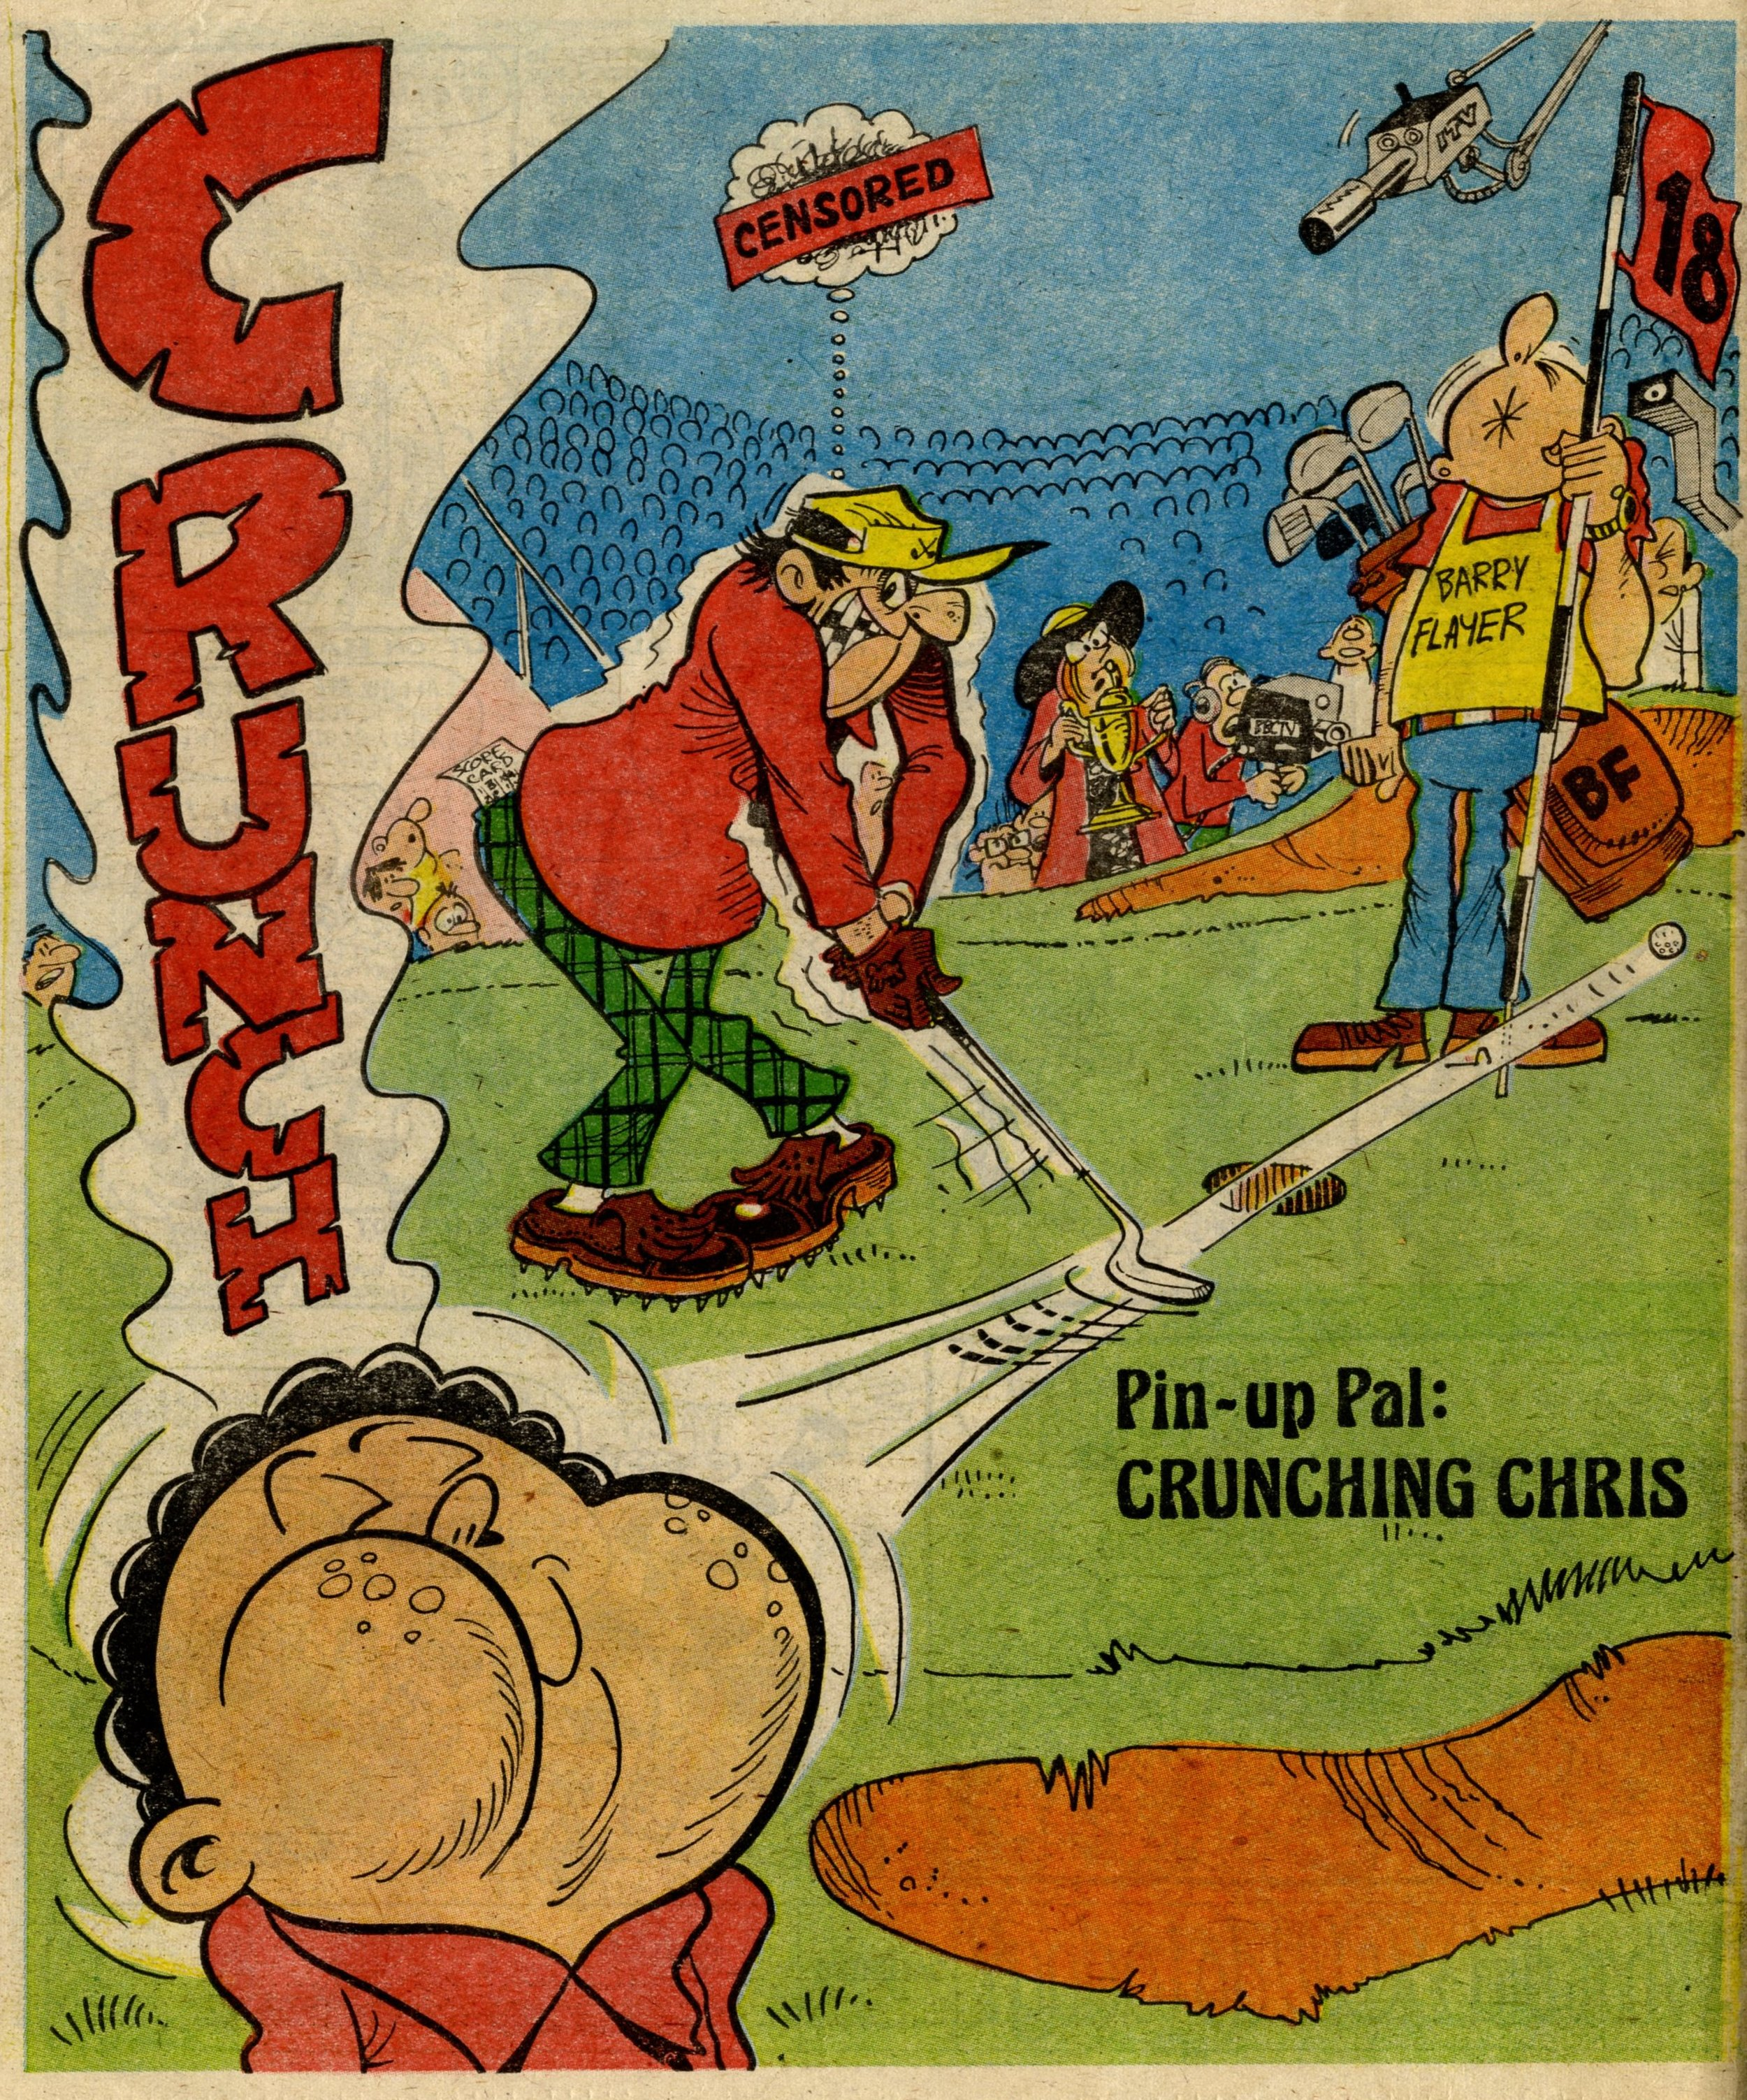 Pin-up Pal: Crunching Chris (artist Frank McDiarmid), 13 January 1979